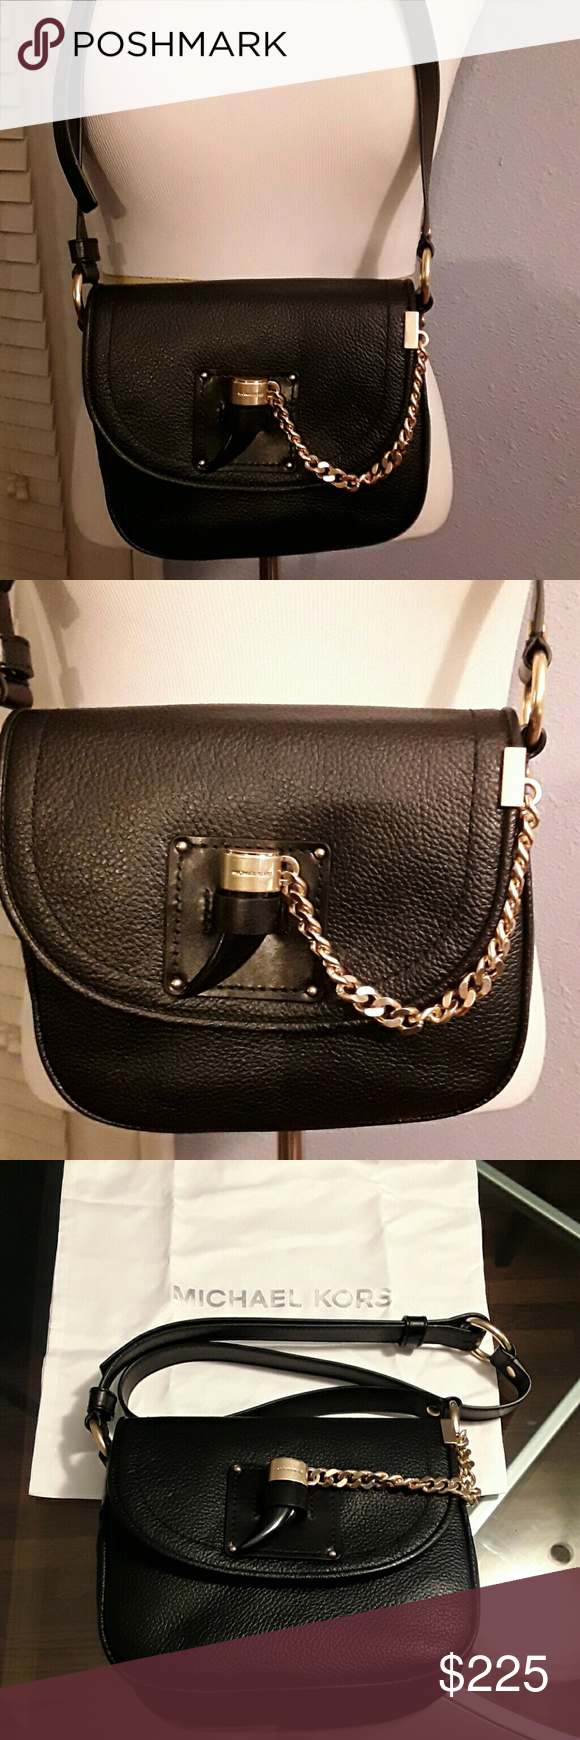 c08fbbeab30f NWT Michael Kors Black James Medium Saddle Bag AUTHENTIC Pebble leather 2  compartment, key holder, zip pocket & phone pocket. Gold hardware, 11 1/2